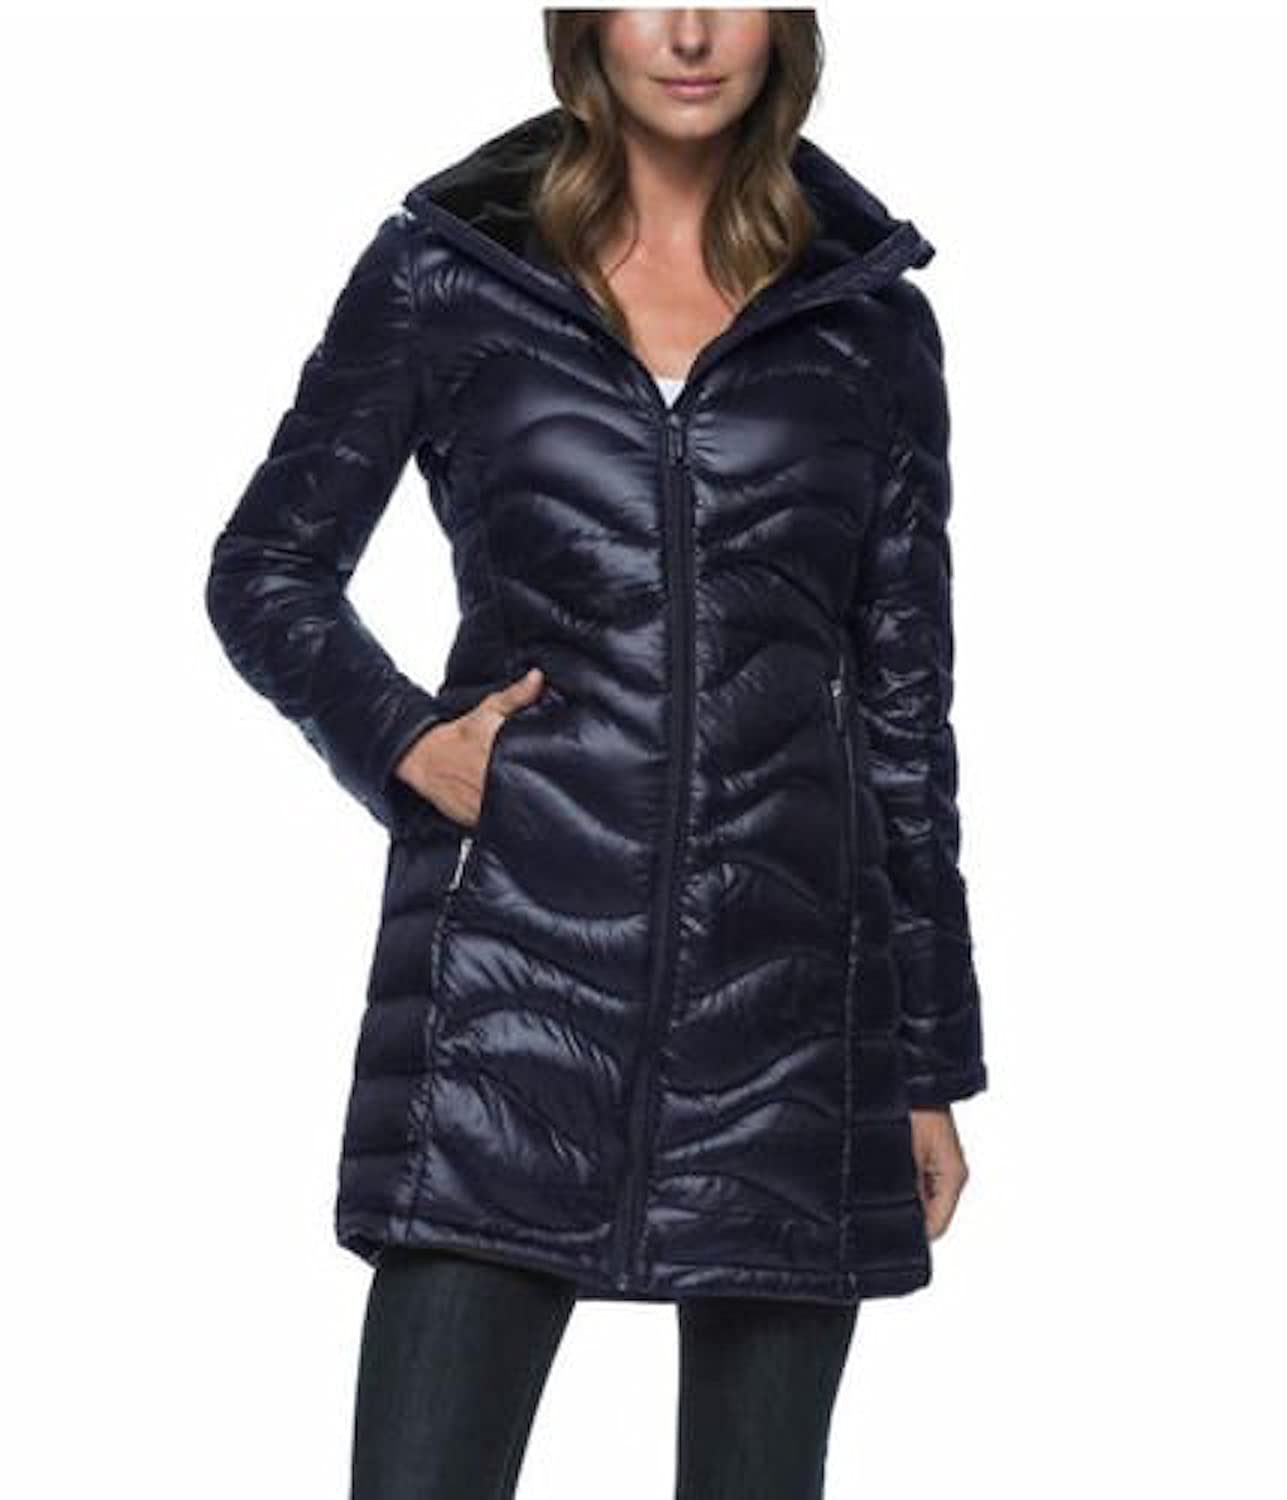 132a8399856 Amazon.com: Andrew Marc Women's Long Length Down Puffer Jacket with Hood:  Clothing